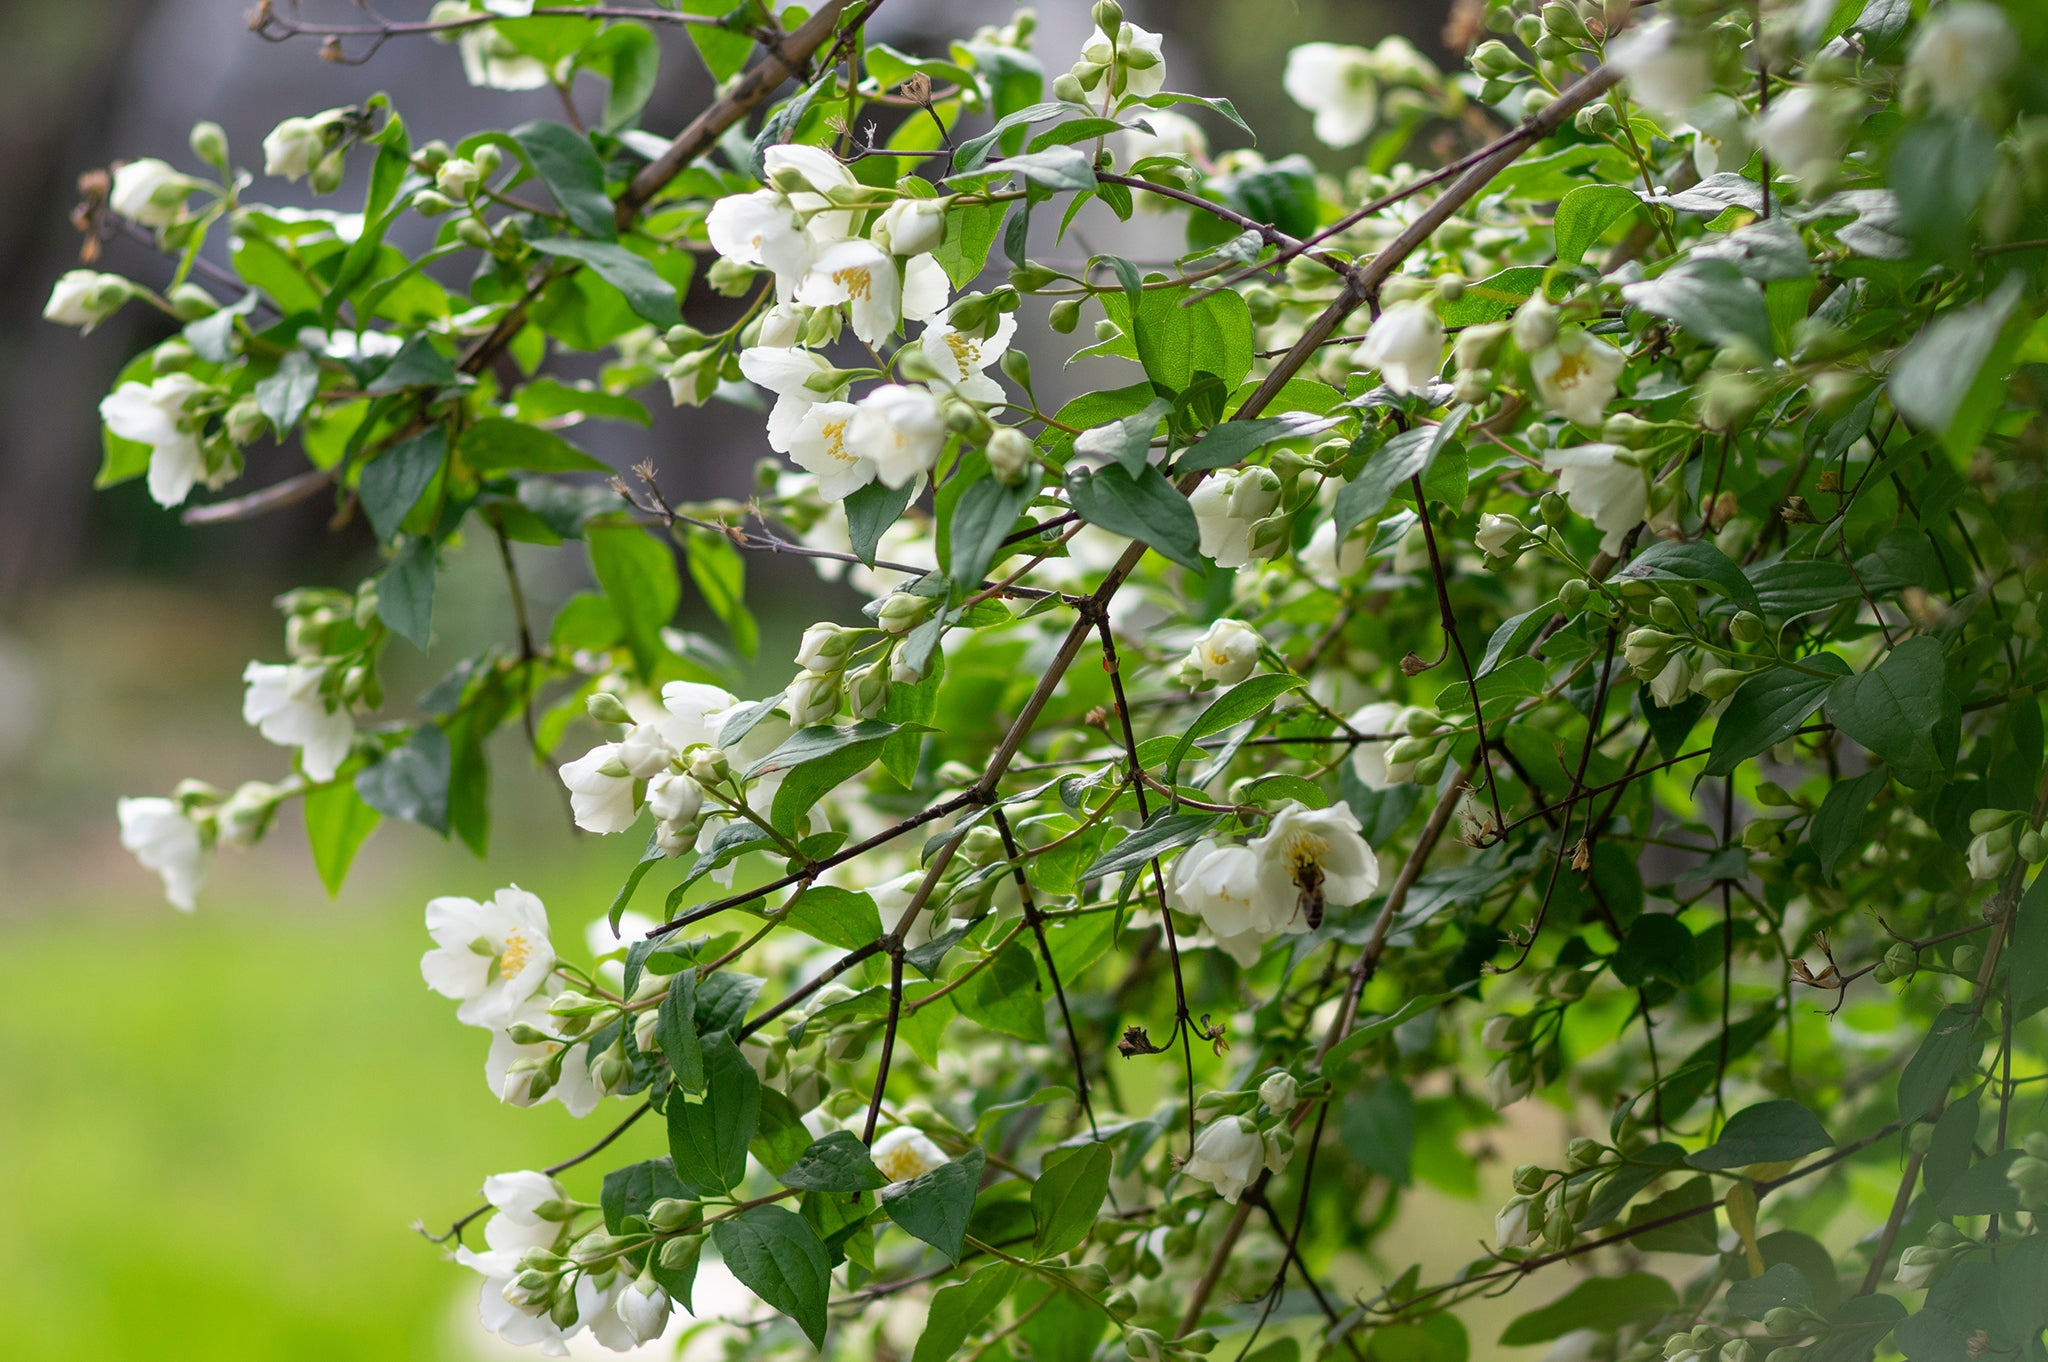 Image of jasmine flowers.